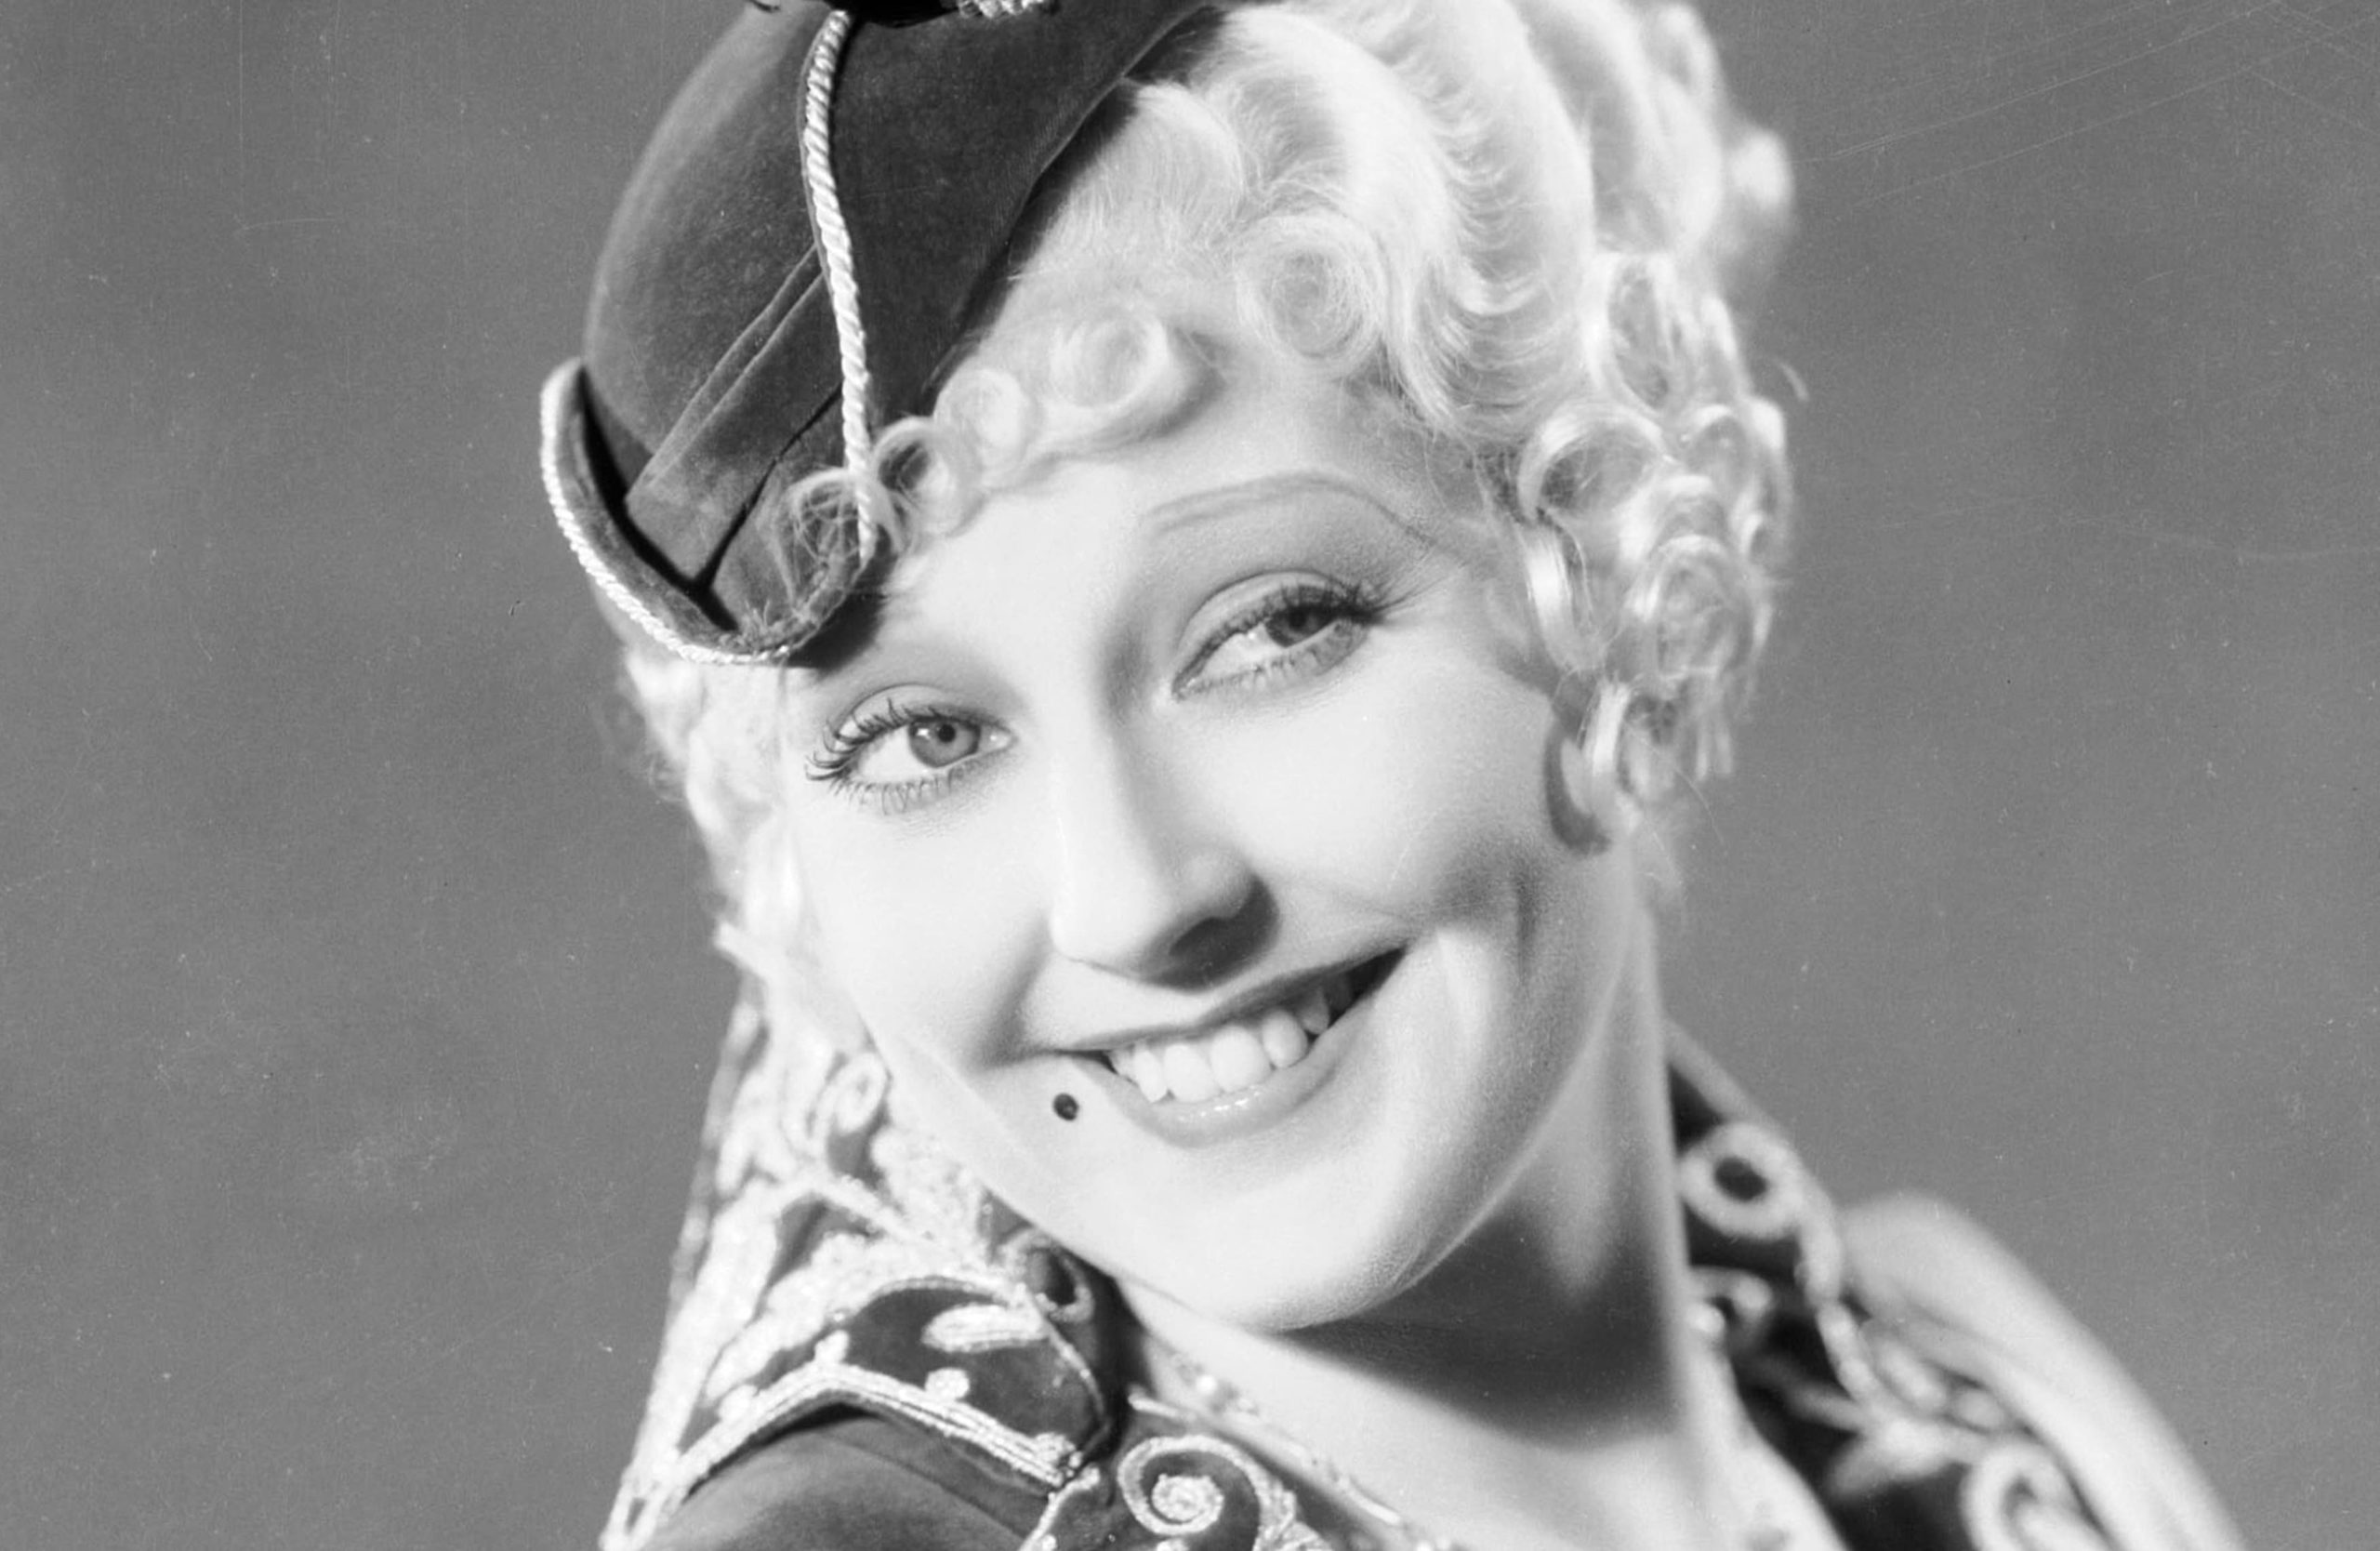 Thelma Todd Found Dead at 29 in Her Lover's Garage Unsolved Mystery of Her Death!